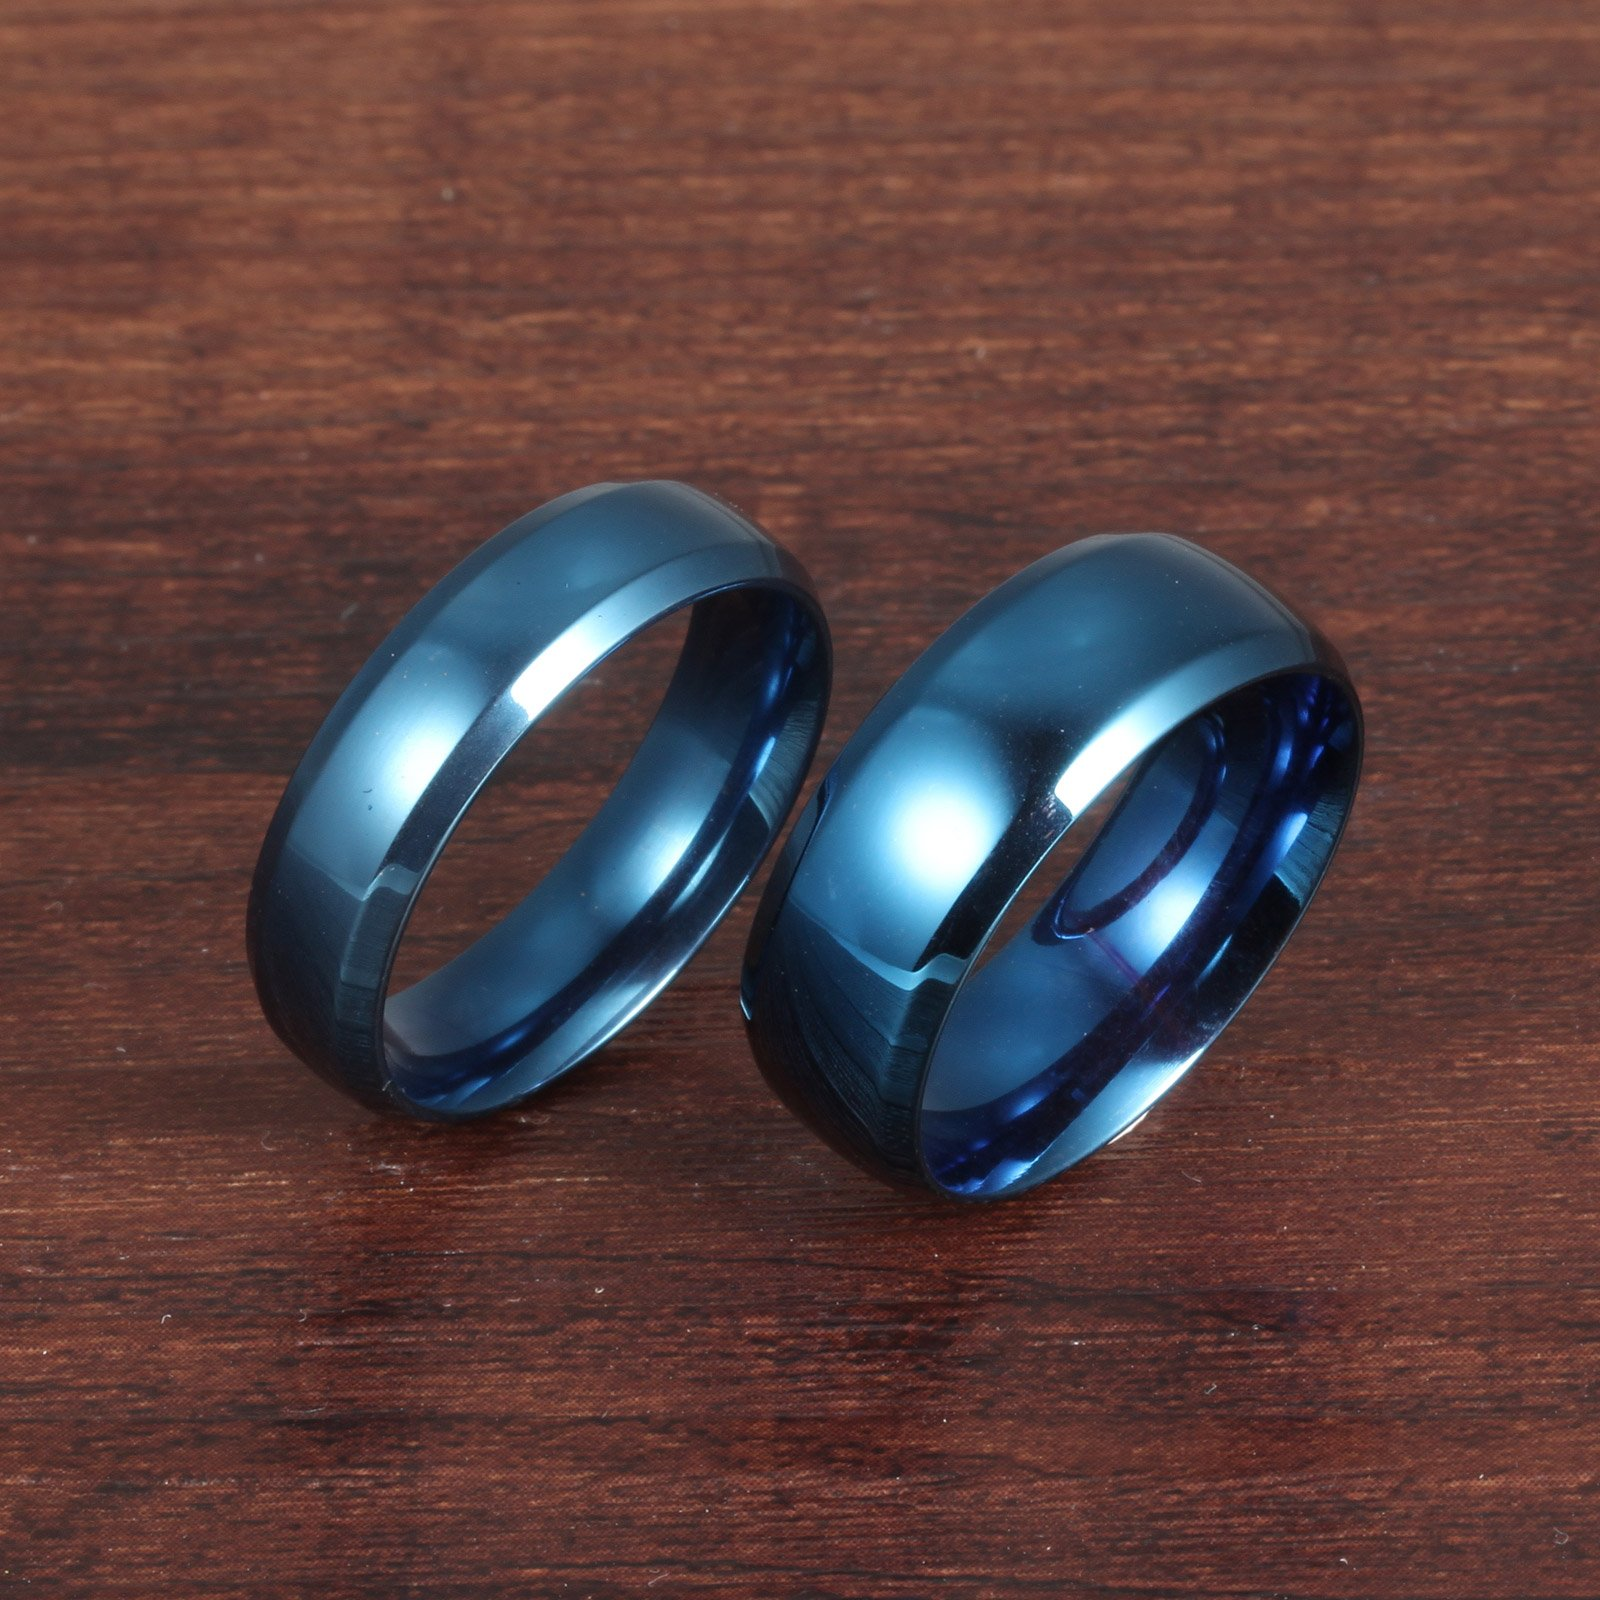 Fate Love Stainless Steel Our Love Pure as The Sea Noble Ocean Blue Couple Rings Wedding Band,New Box by Fate Love (Image #4)